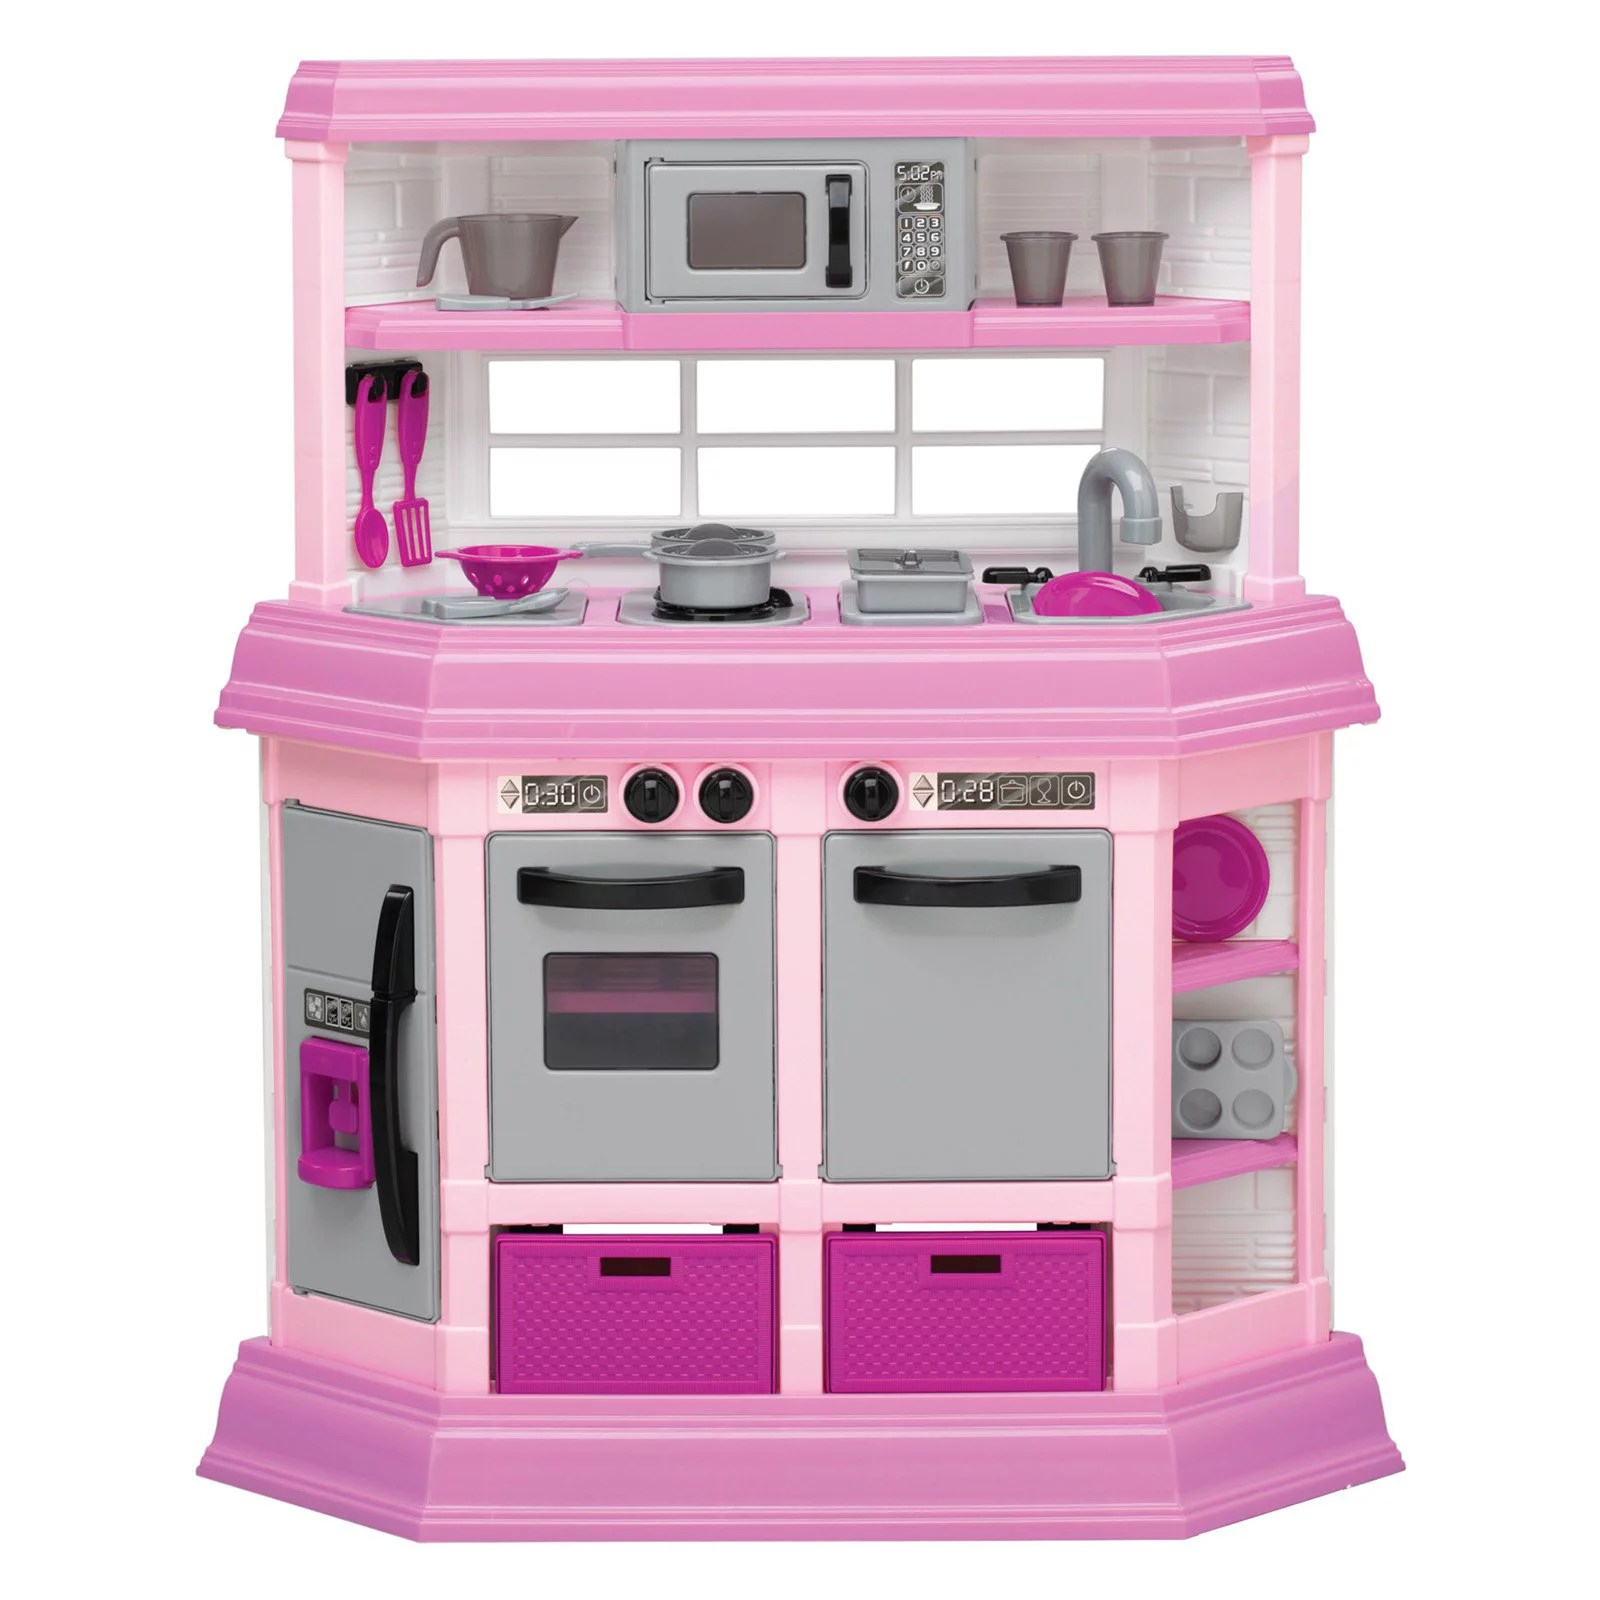 toy kitchens used kitchen cabinets craigslist for girls stove play toddler set kids accessories children playset